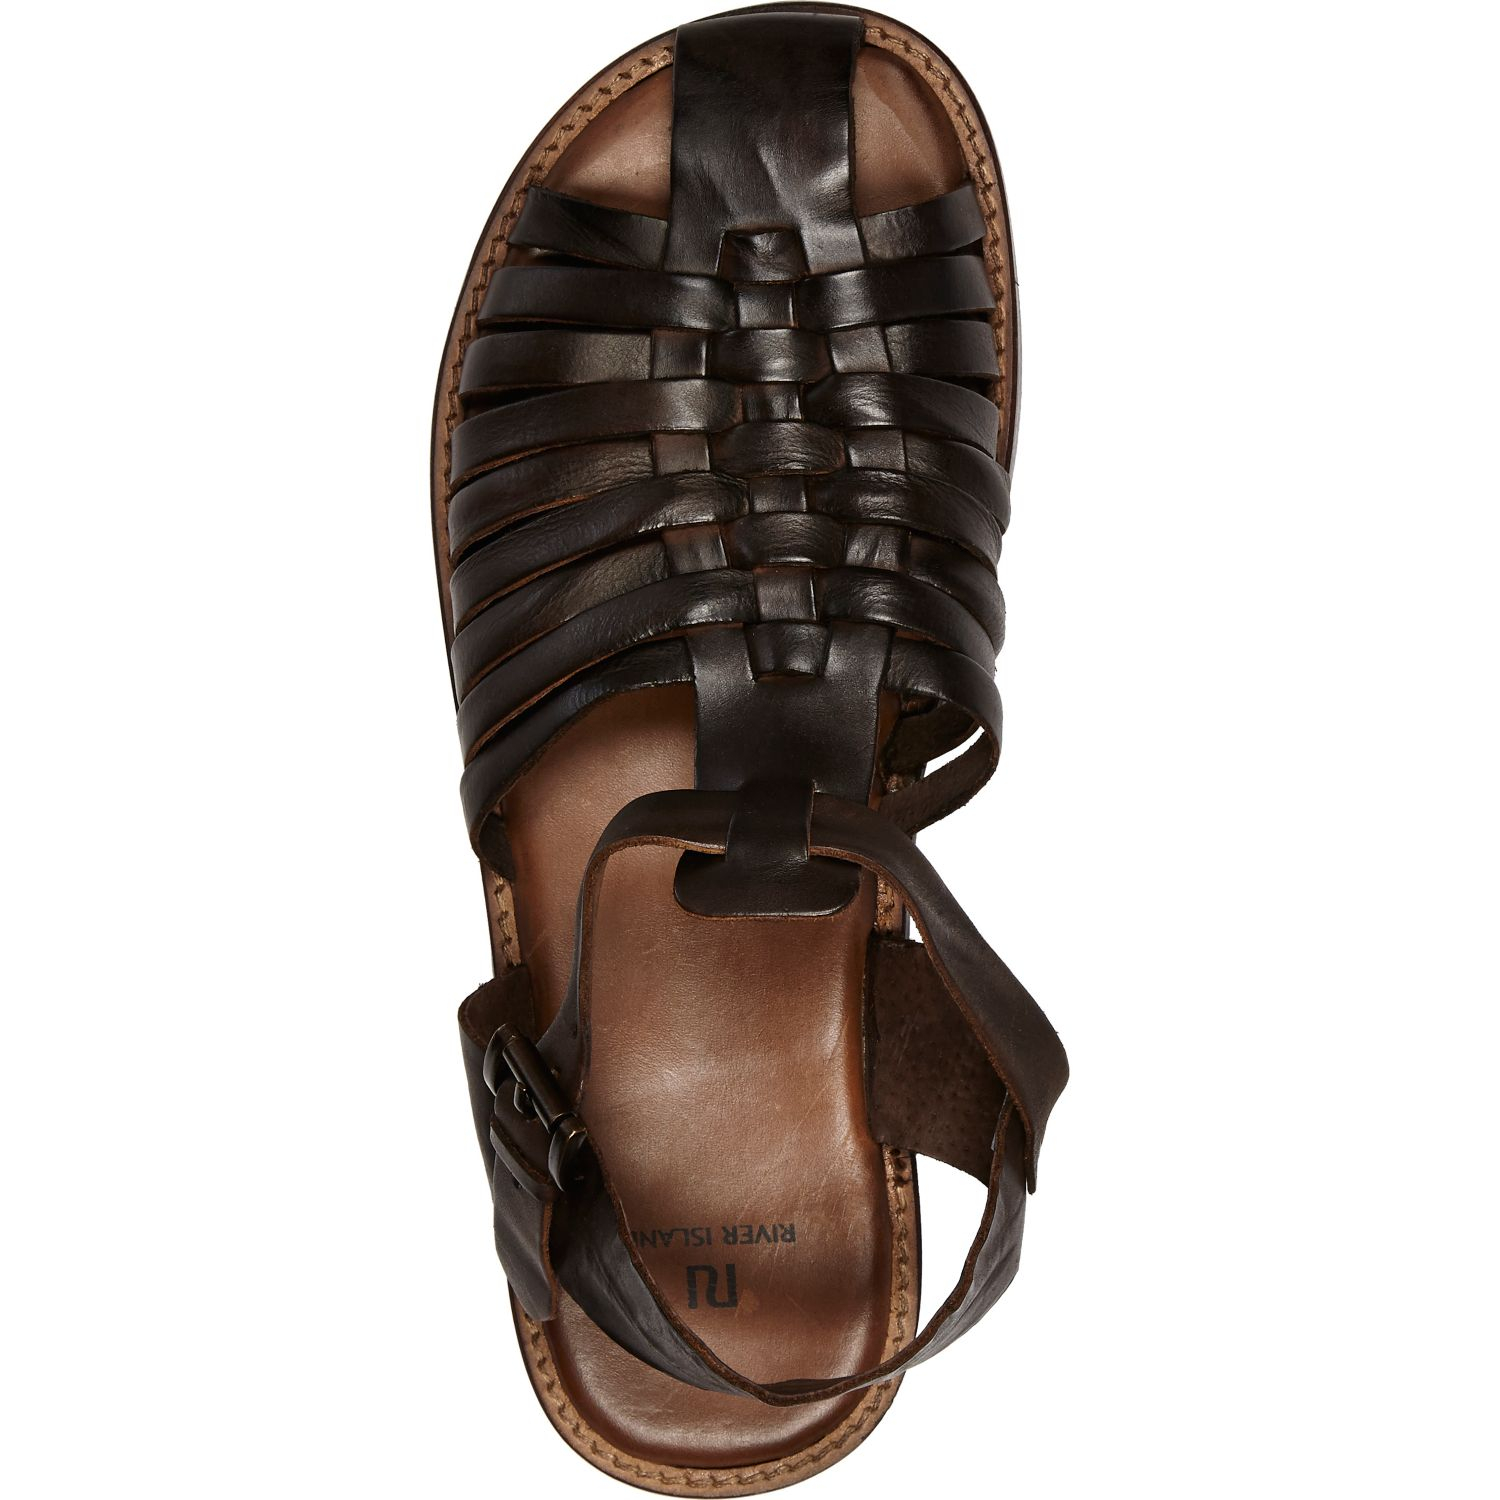 River Island Dark Brown Gladiator Sandals In Brown For Men